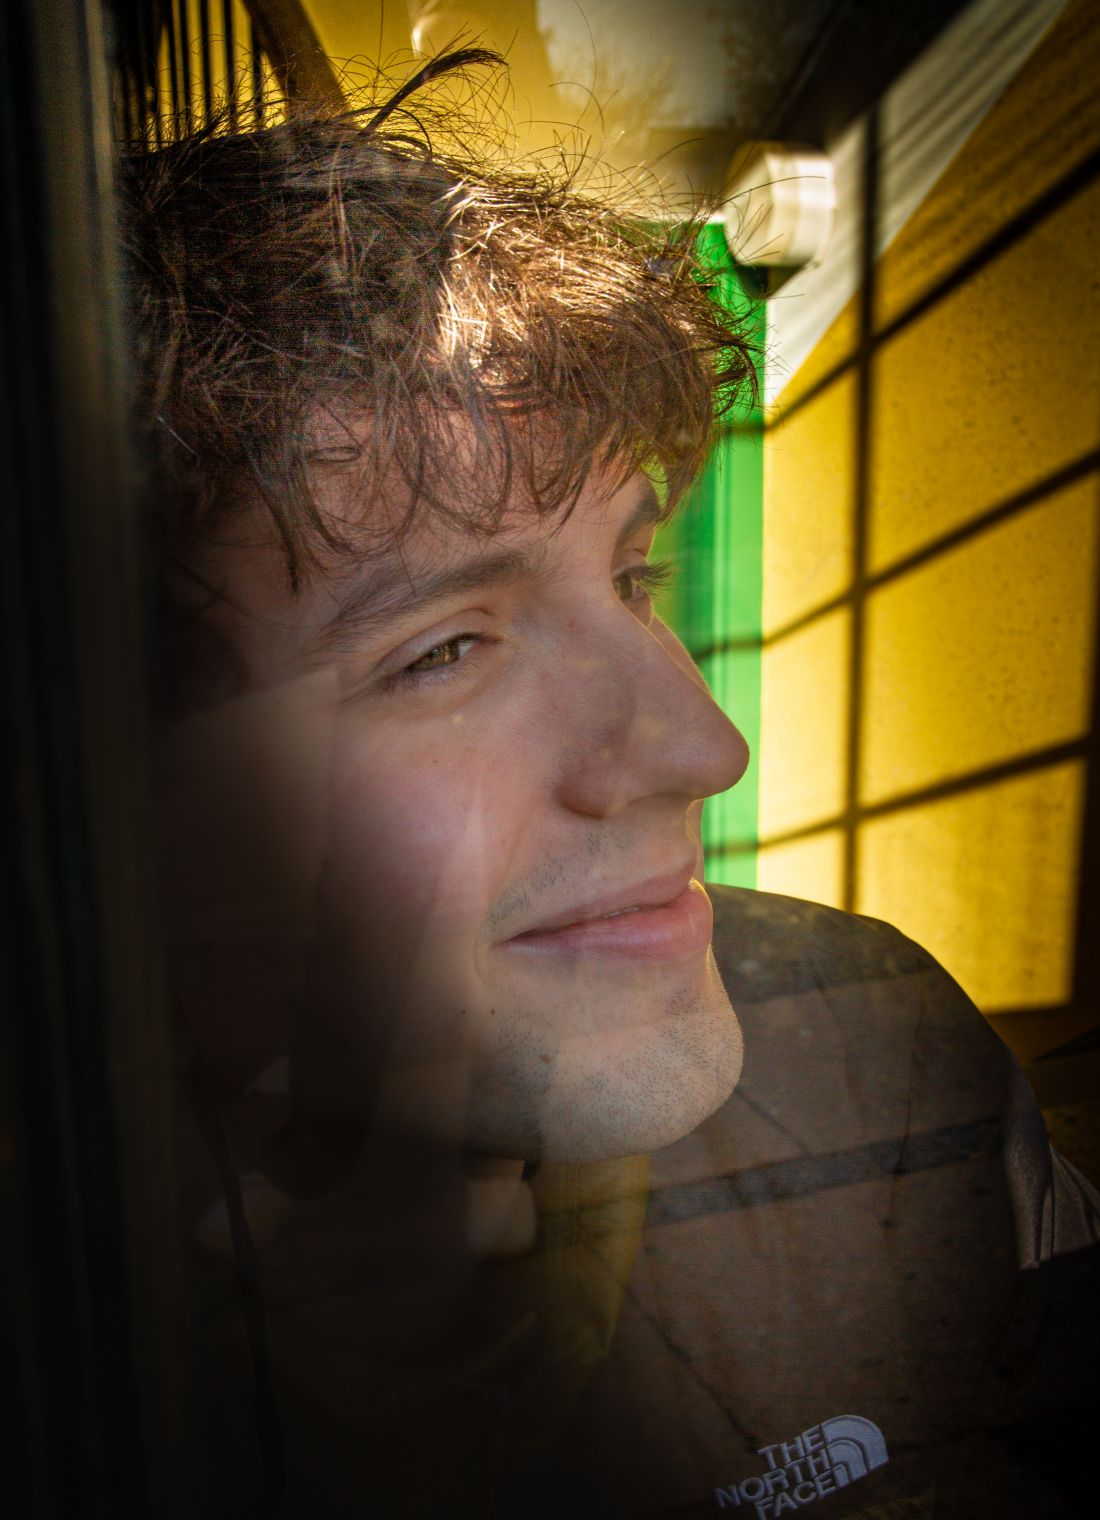 portrait of a young man - reflection in window